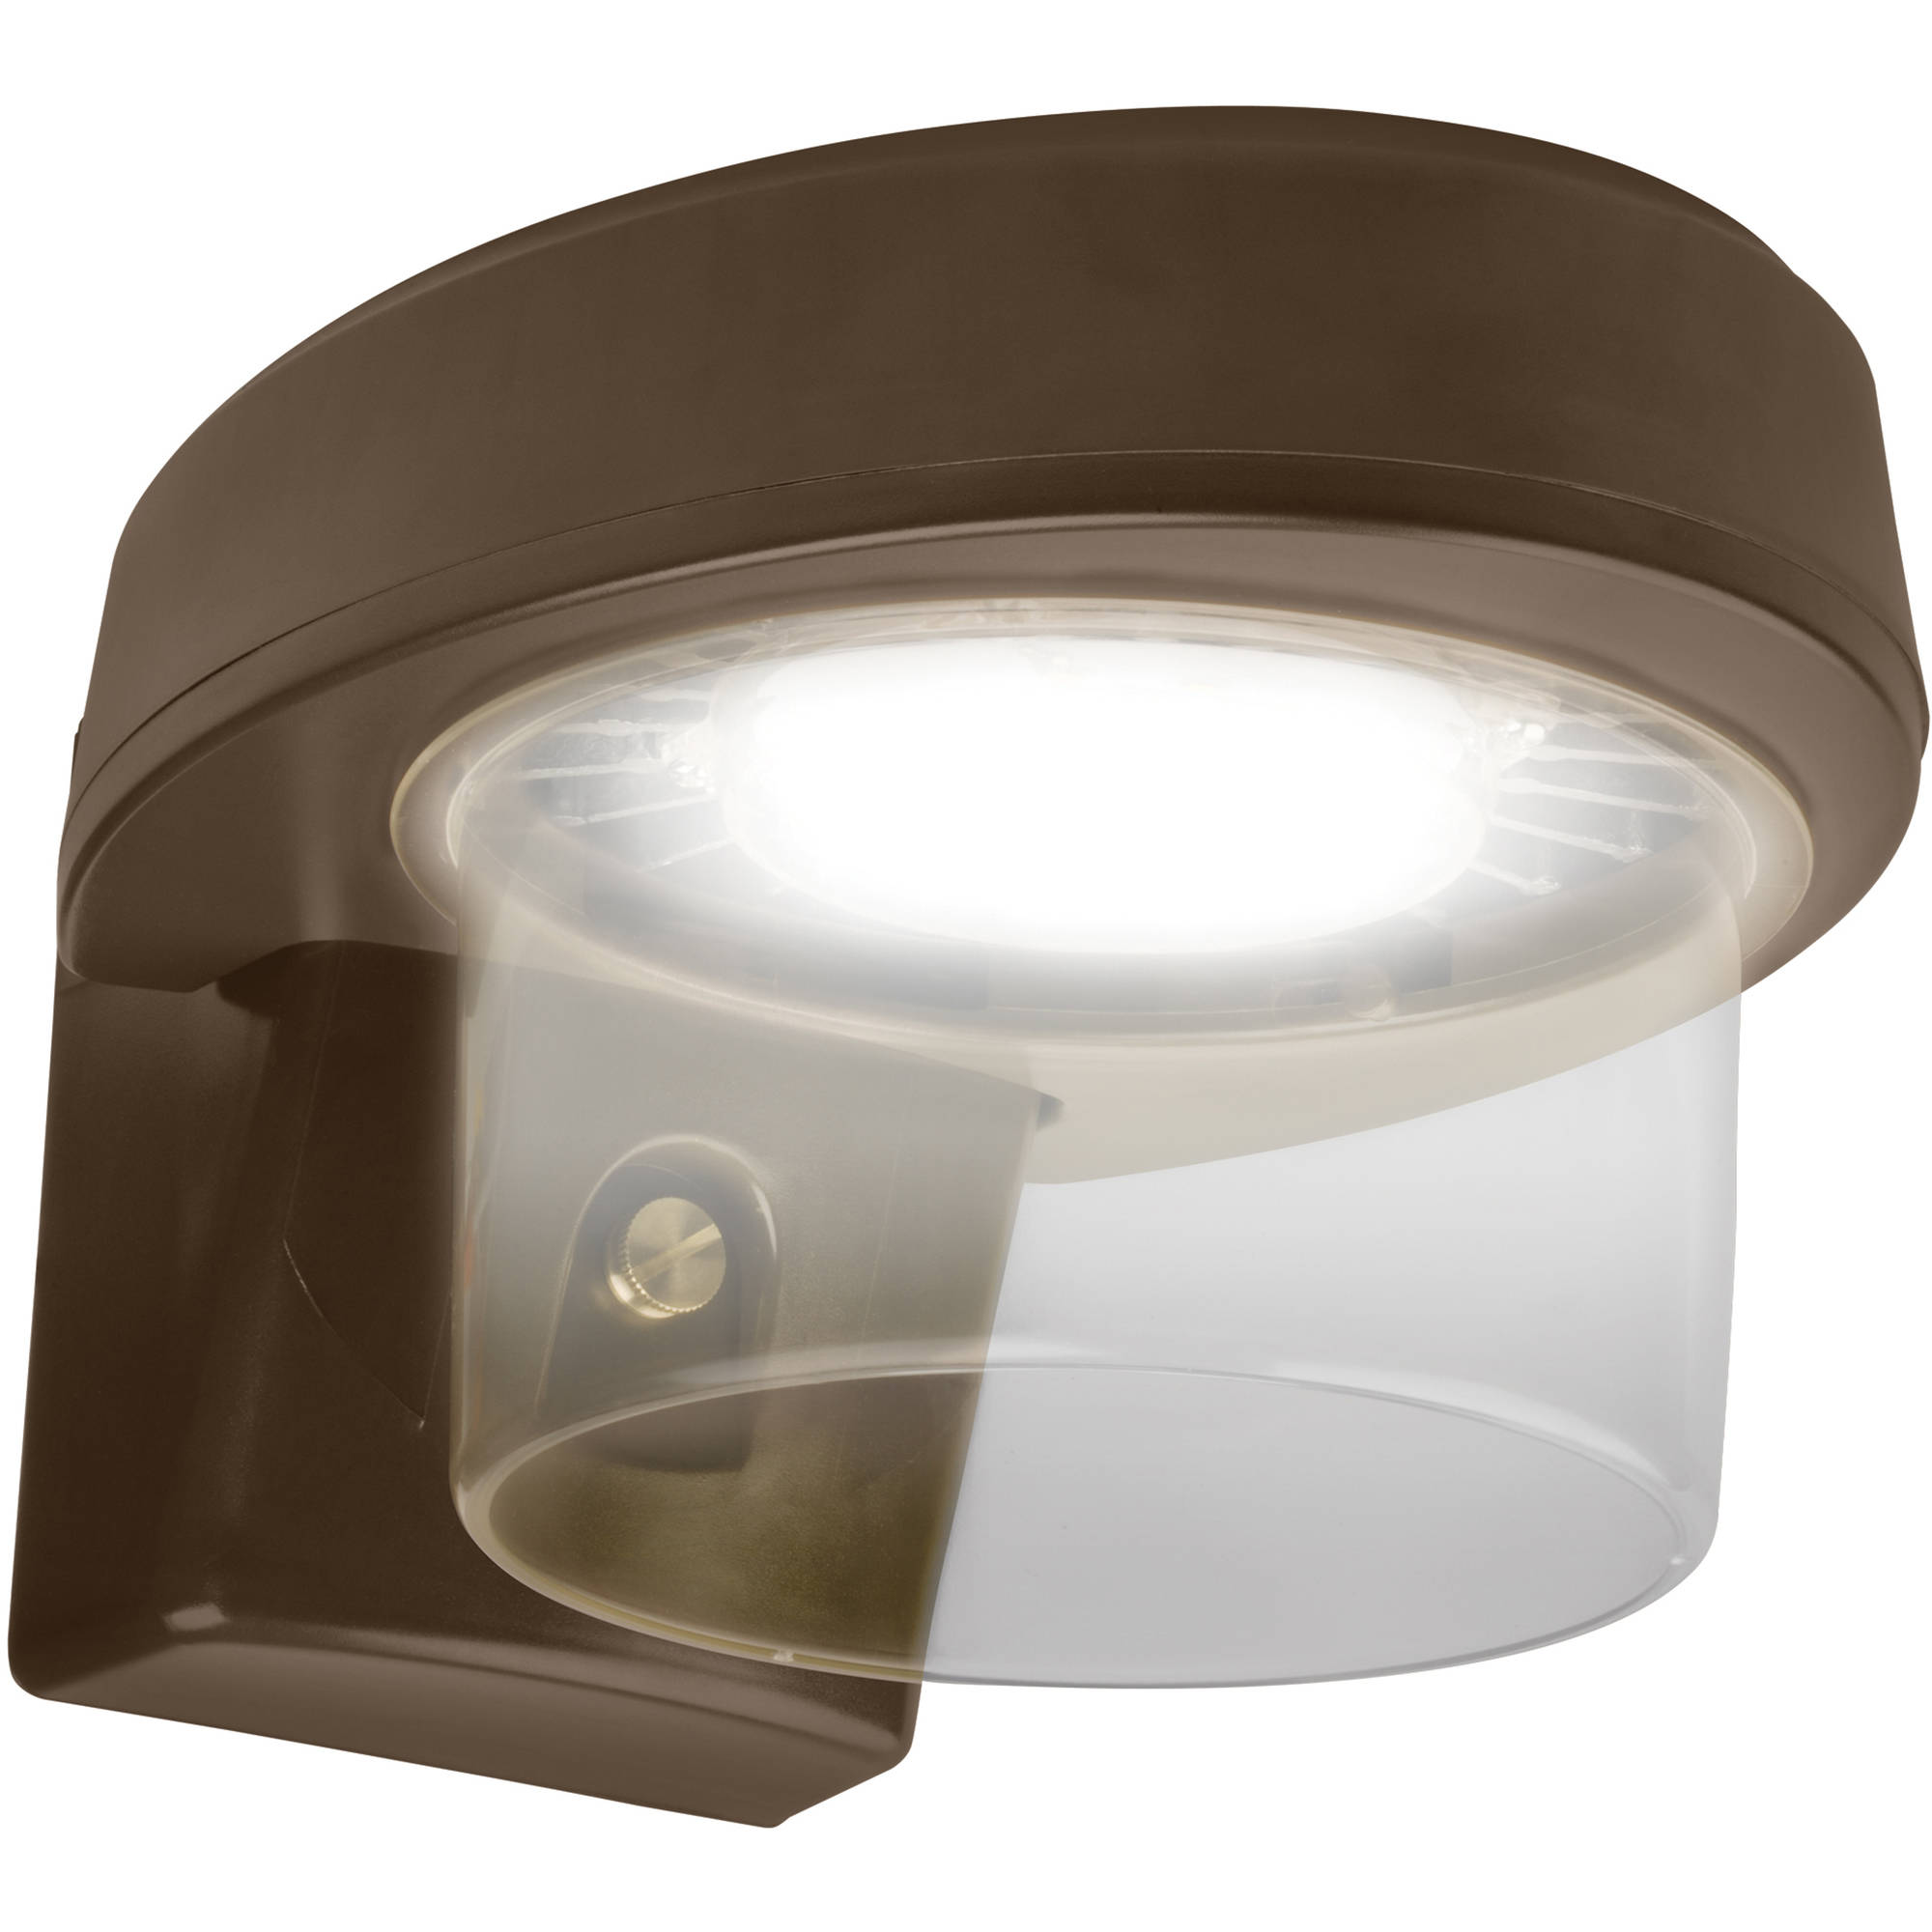 Brinks LED Dusk to Dawn Motion-Activated Security Light, Bronze